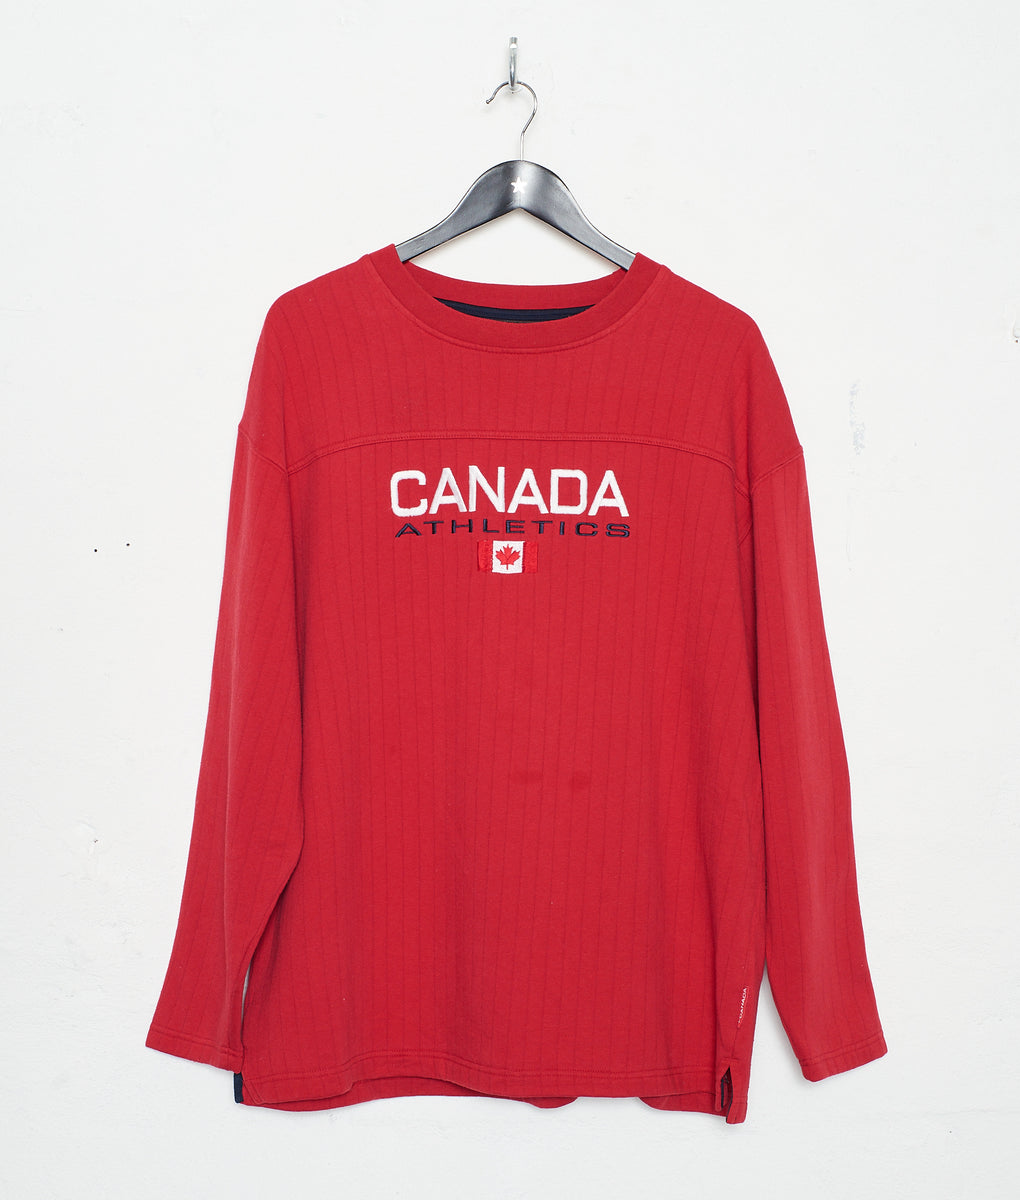 Canada Athletics Sweat (L) - FROTHLYF